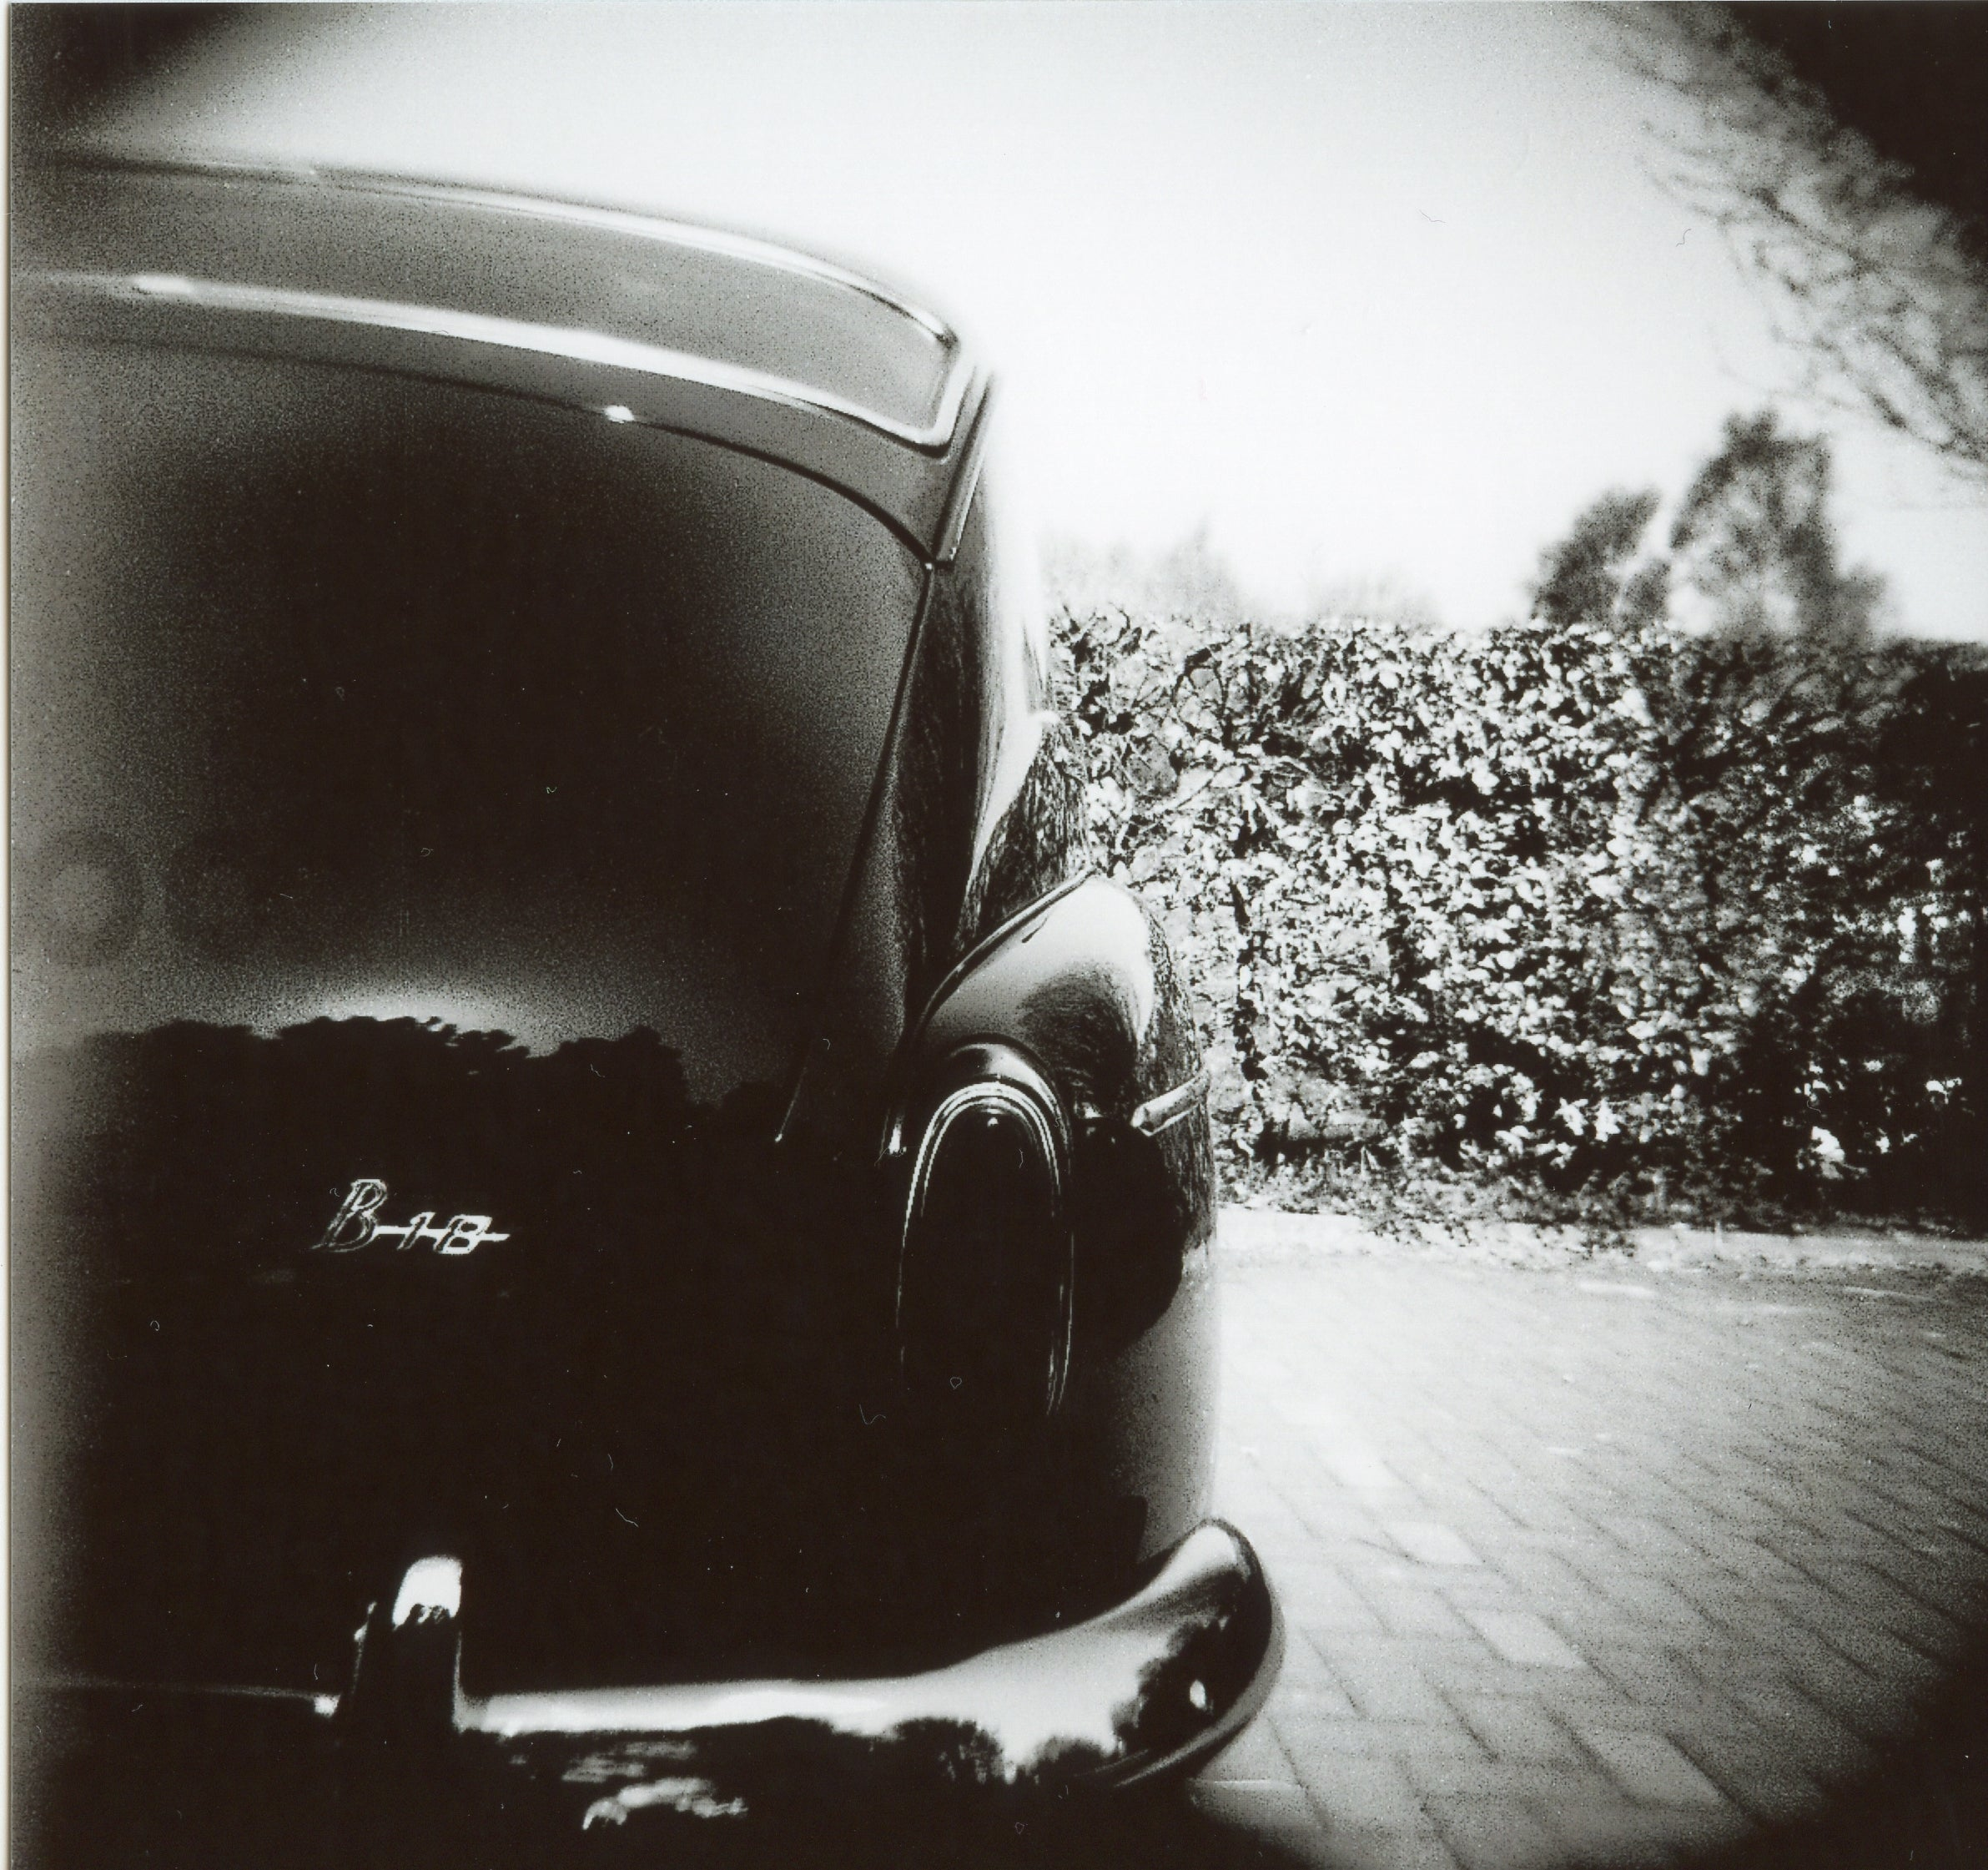 Photo of car on adox chs II 120 b&w film